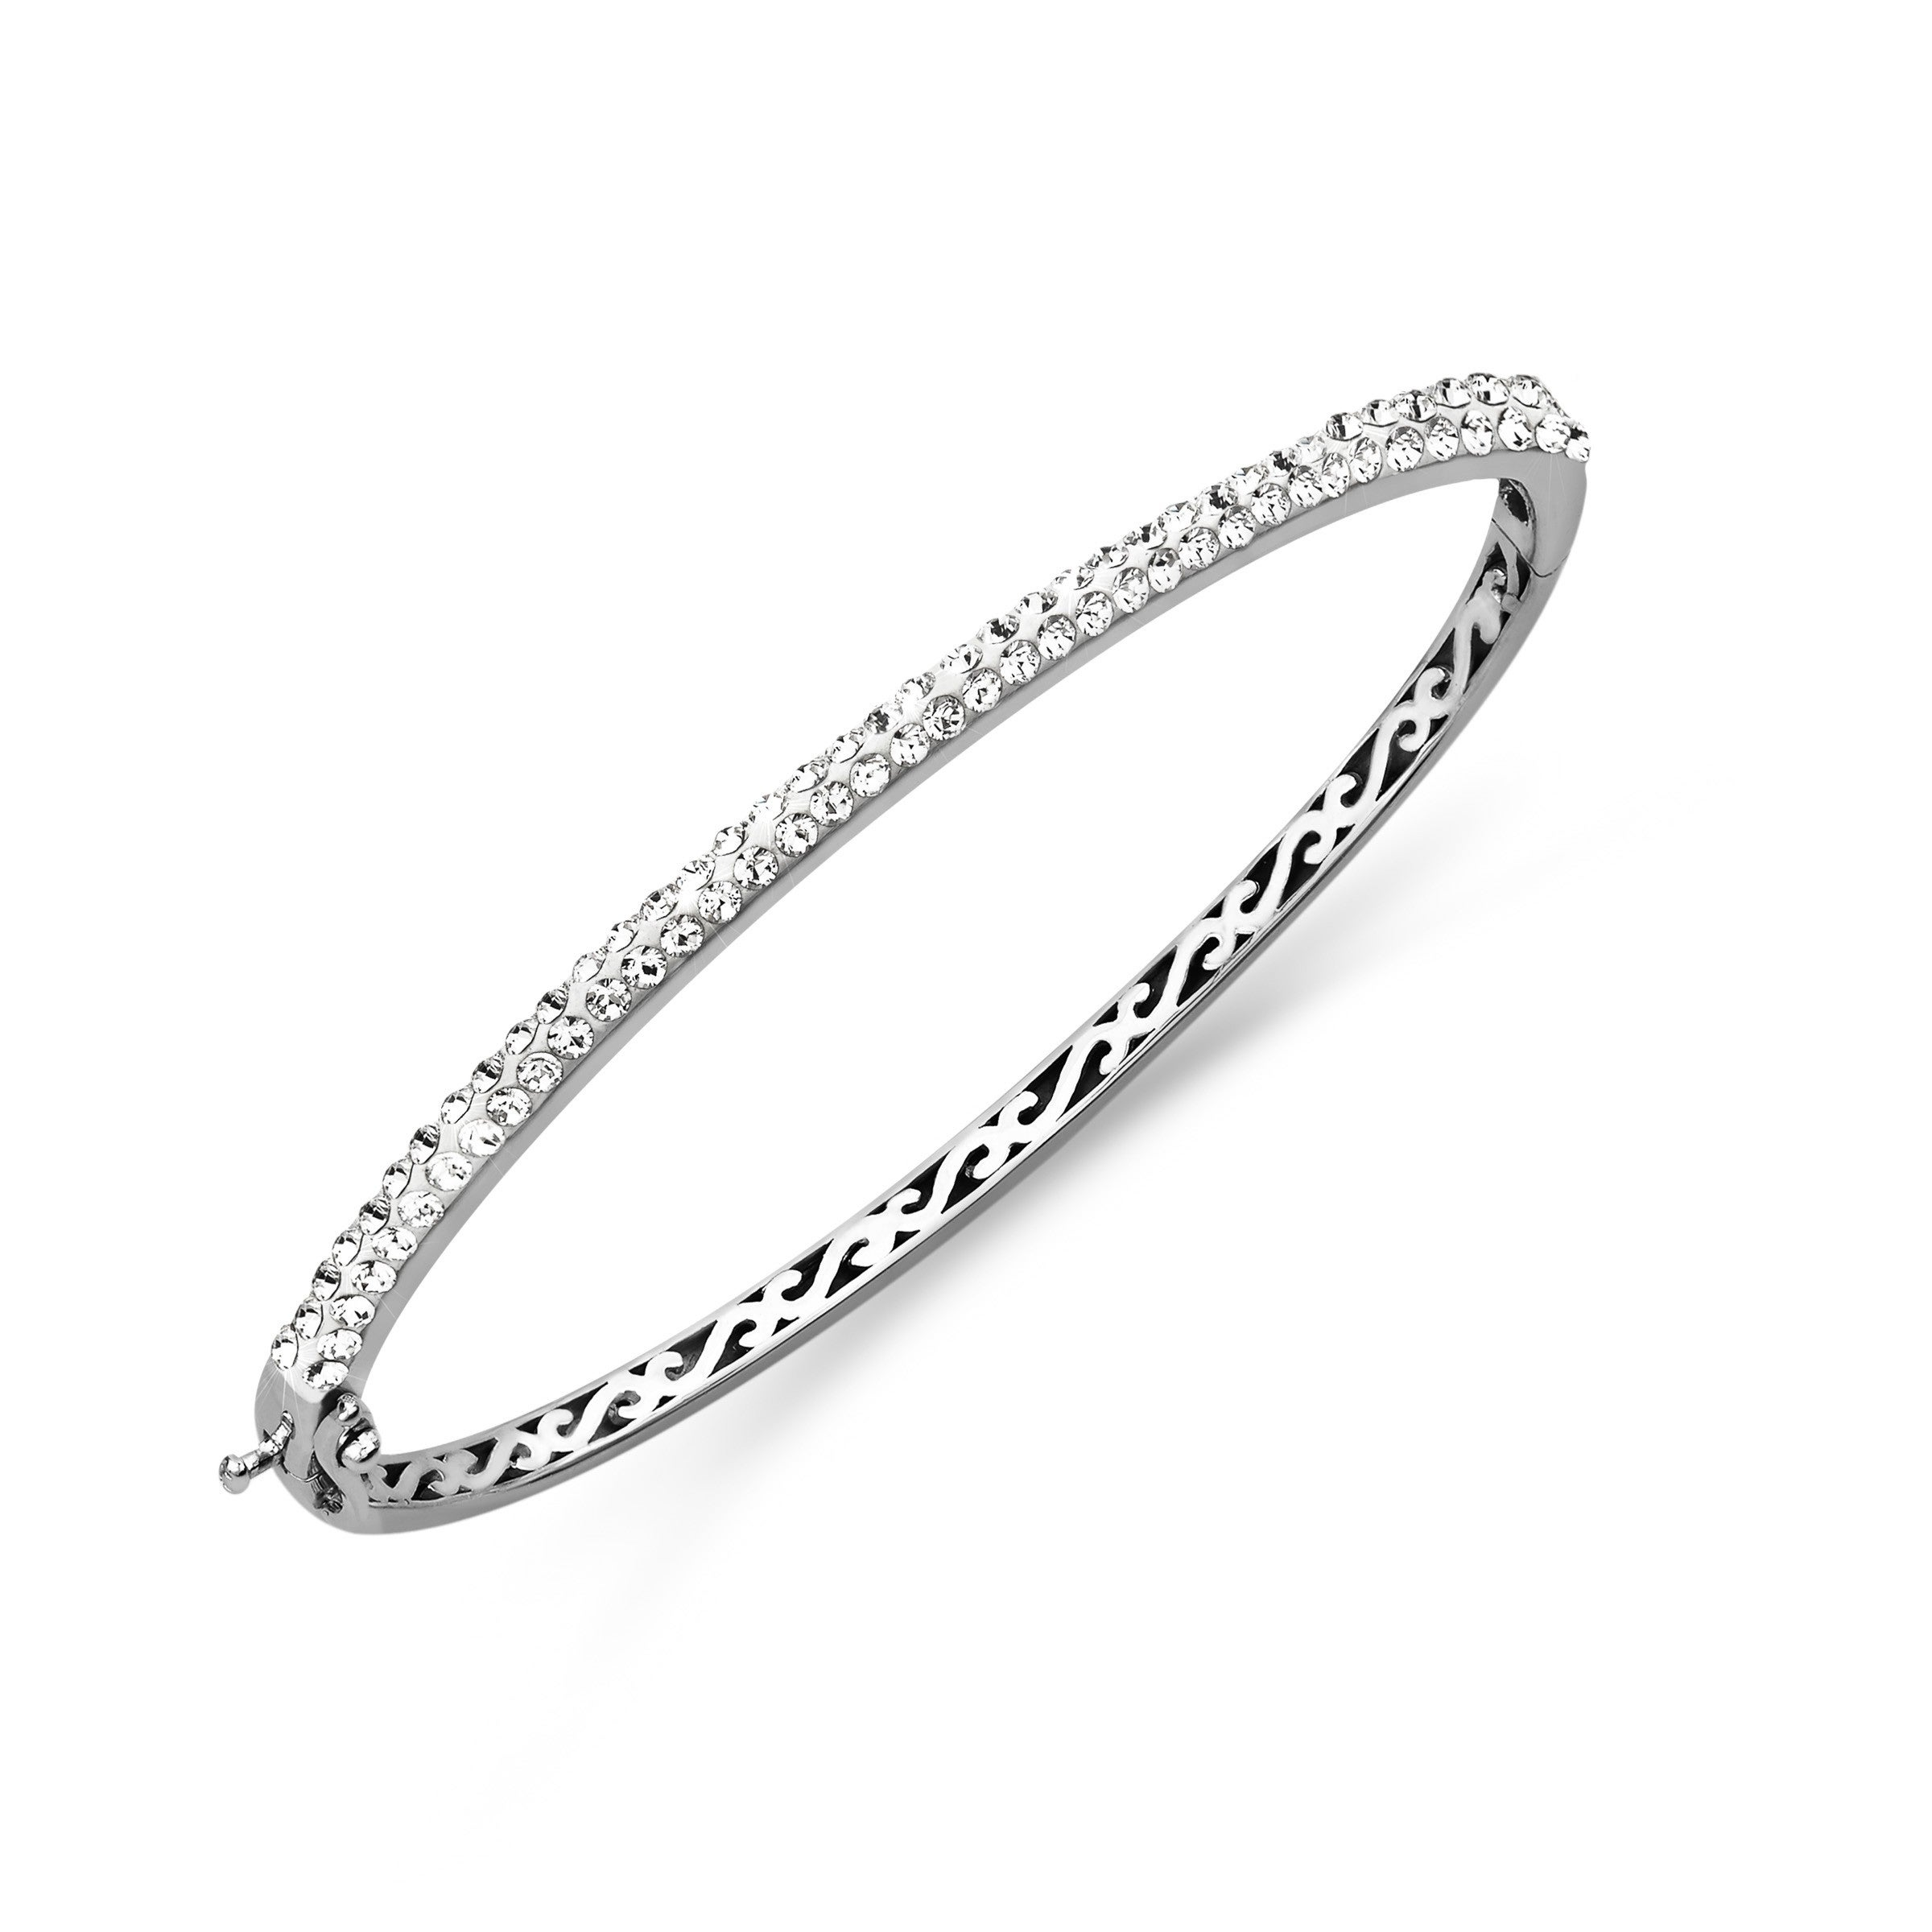 Shop Crystaluxe Bangle with White Swarovski Crystals in Sterling Silver -  On Sale - Free Shipping Today - Overstock - 18847647 1d9ed6fb73